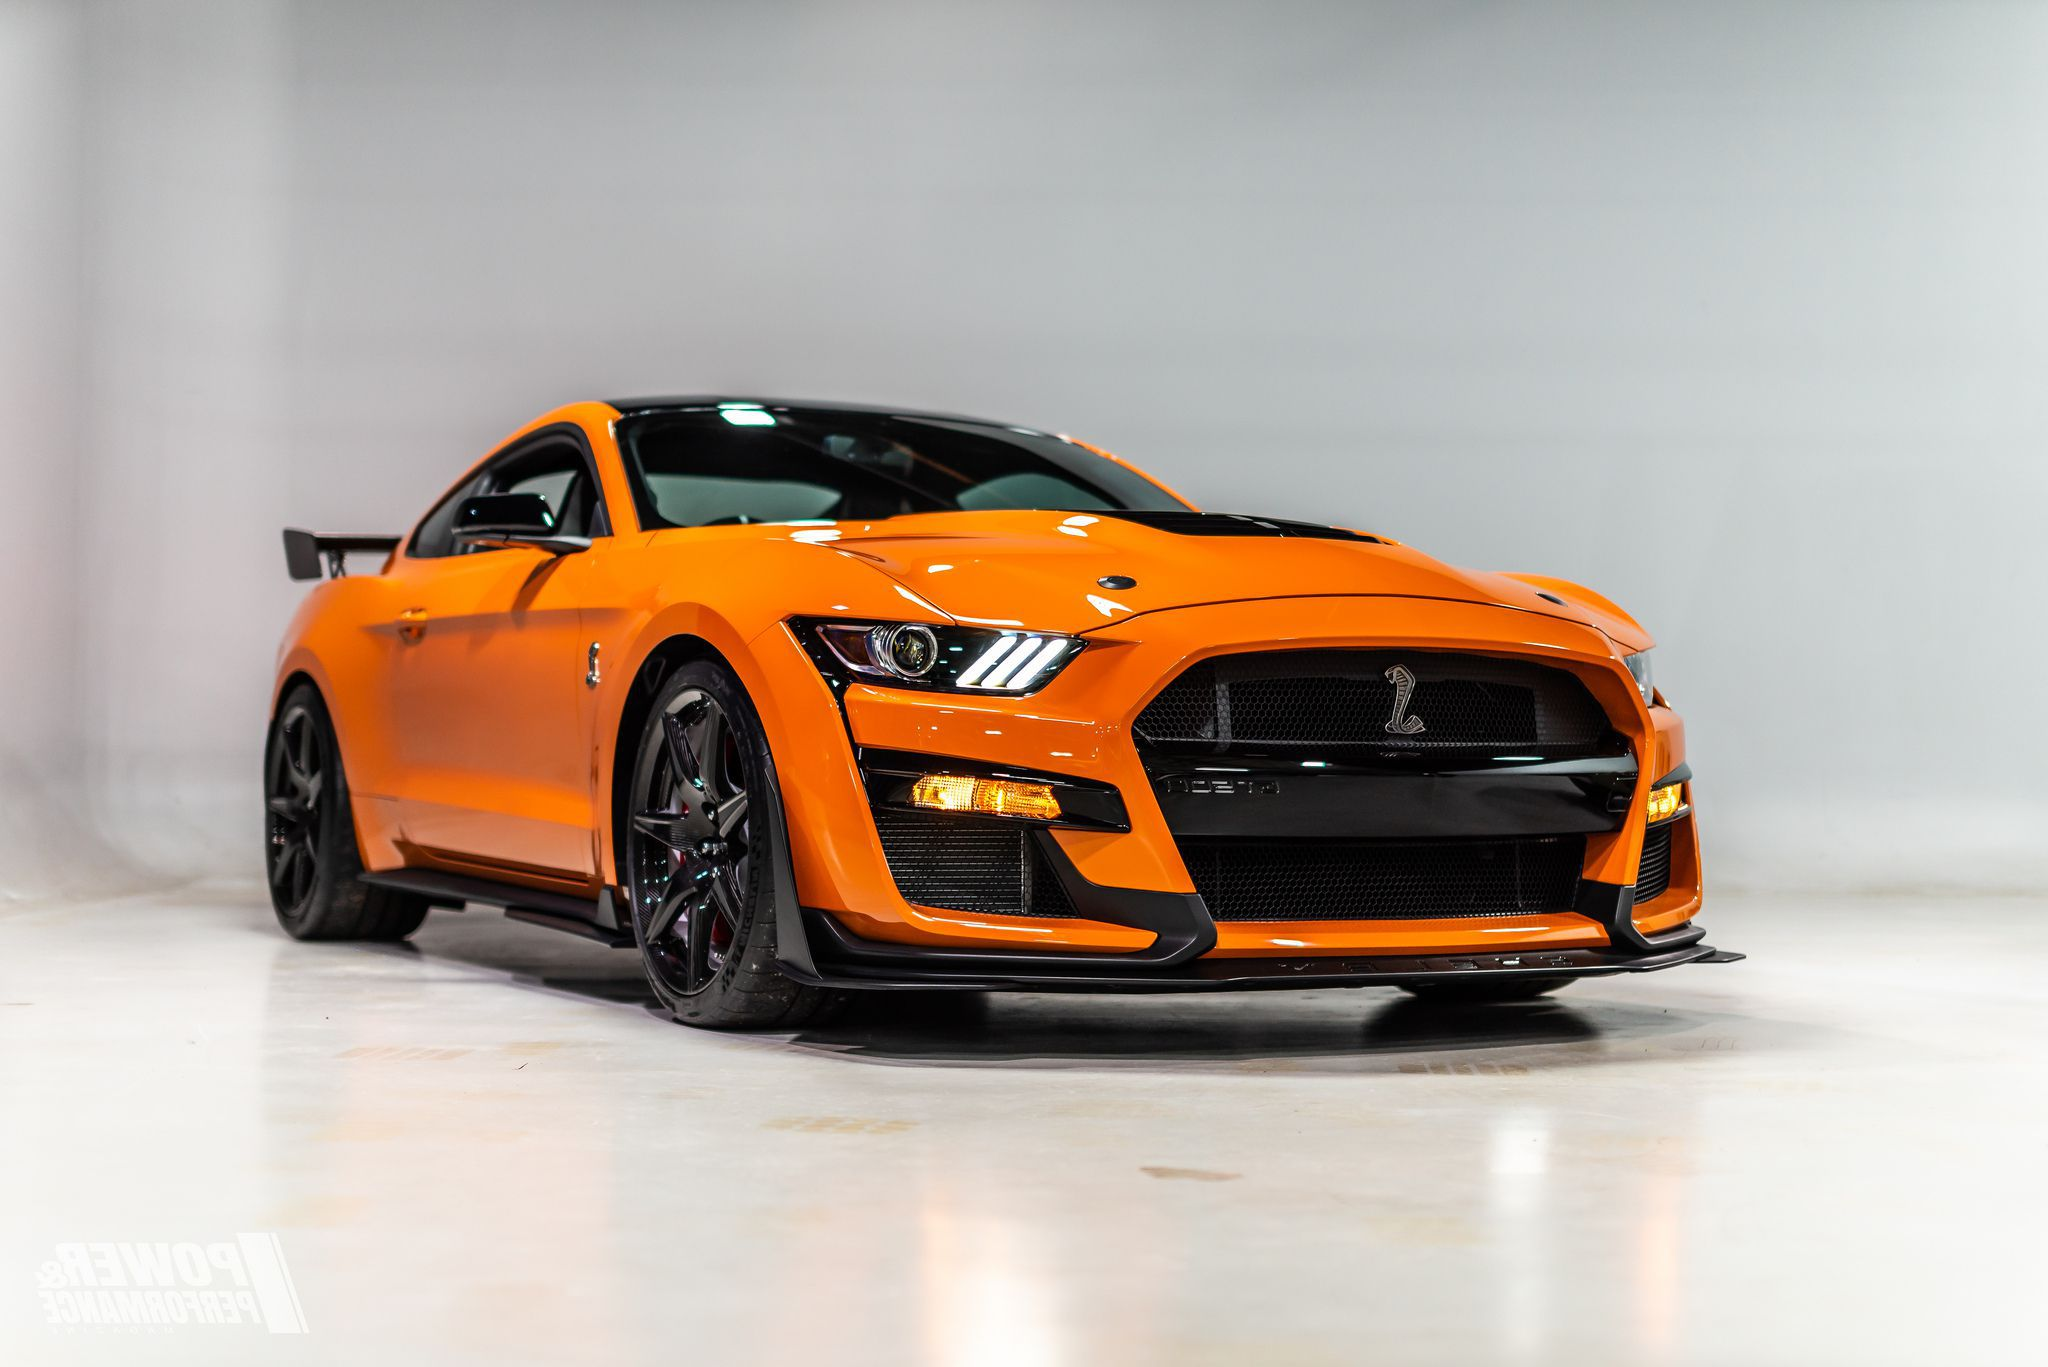 2020 orange Ford Mustang Shelby GT500 - HD Image #23 on ...